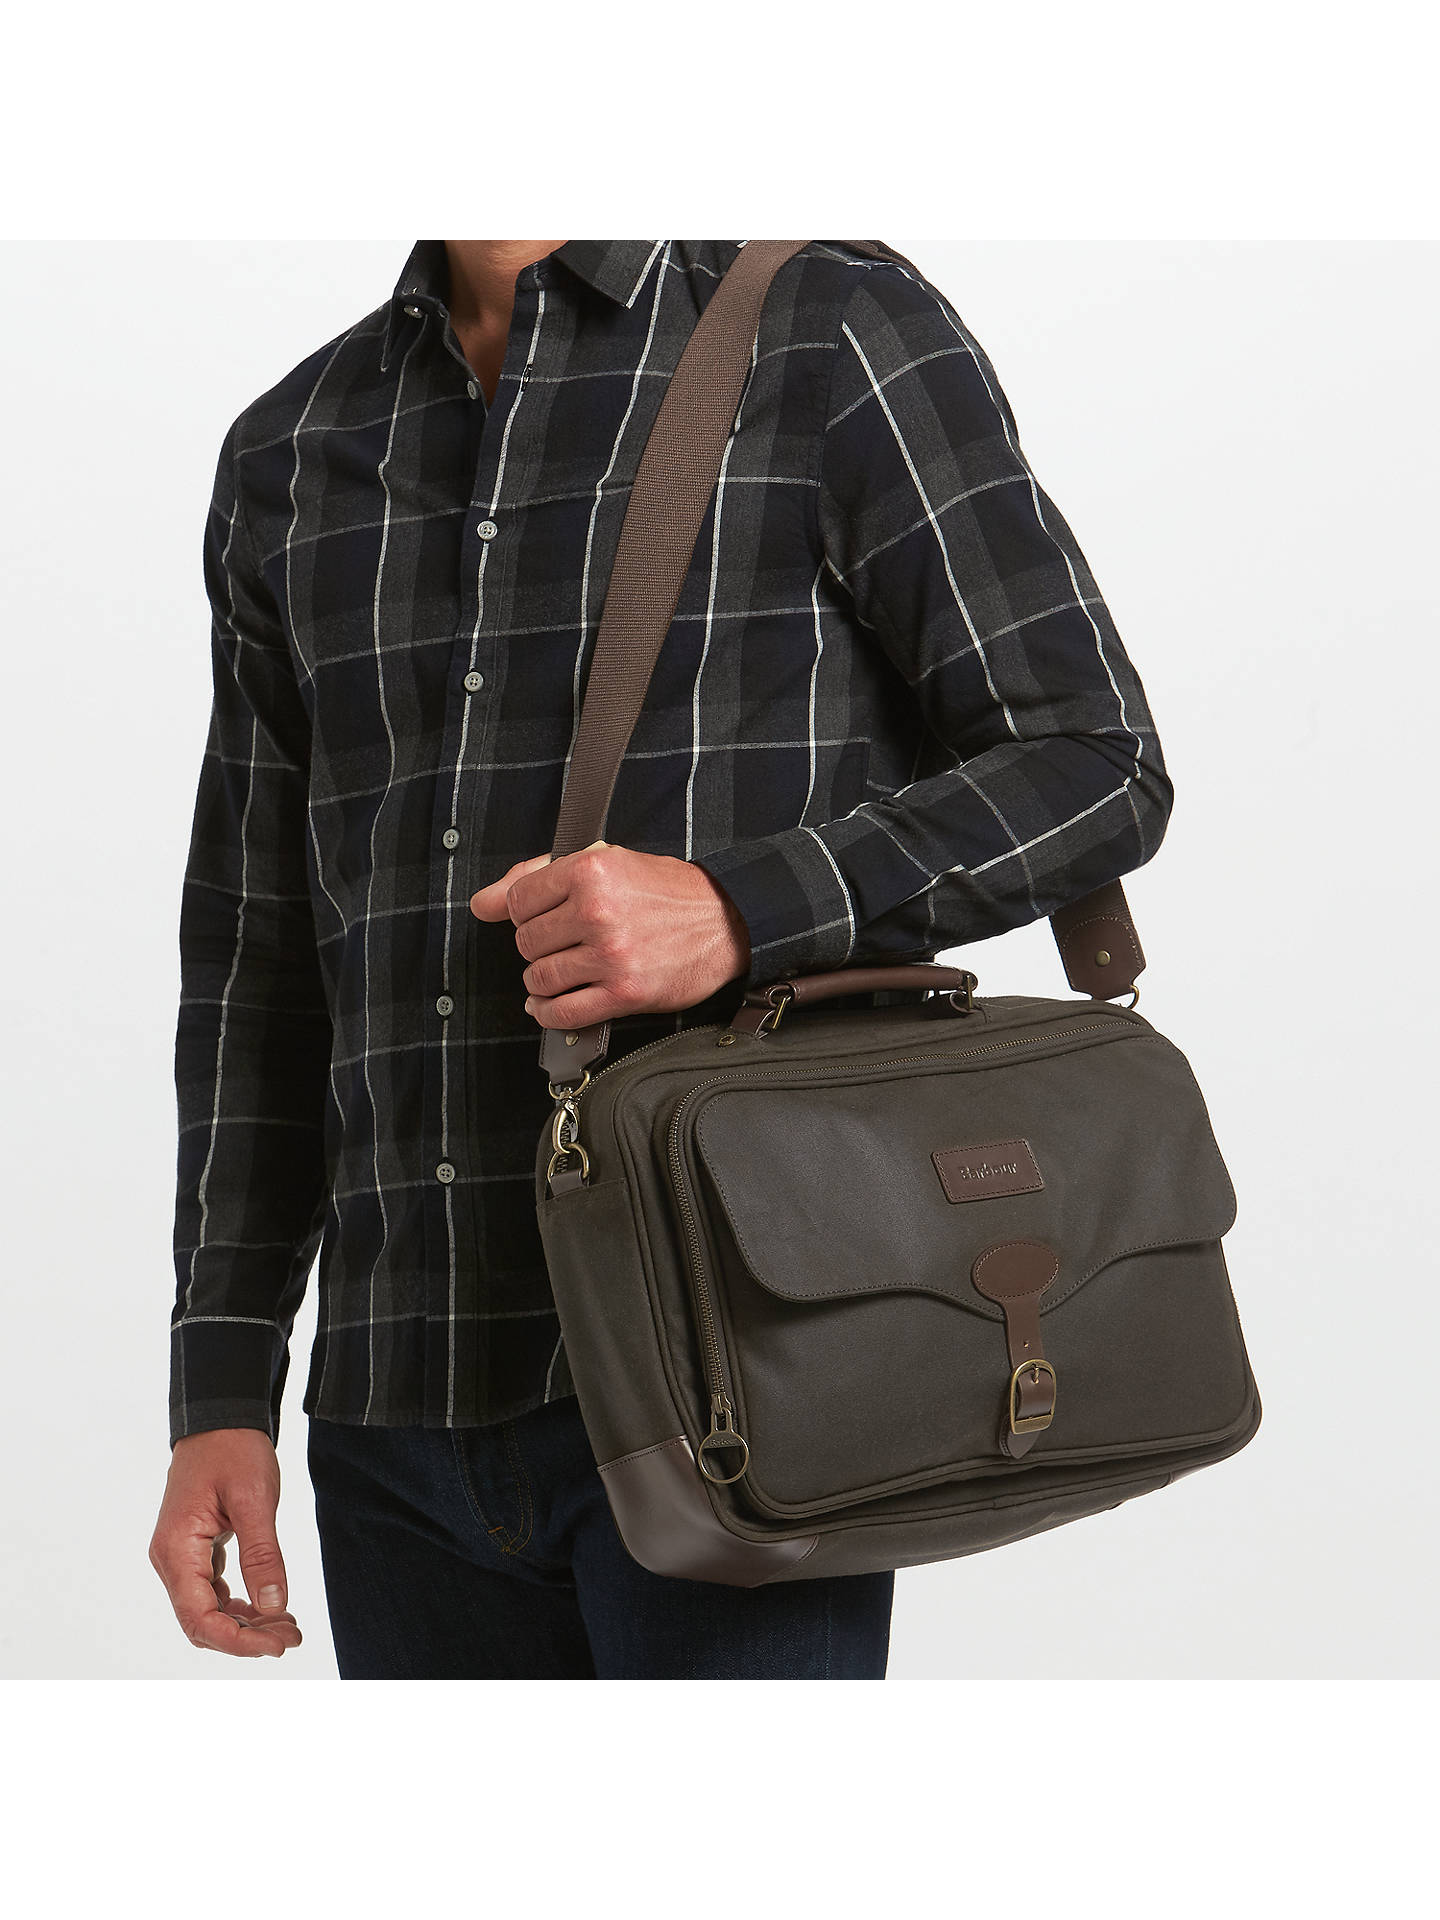 66d66599a4a2 Buy Barbour Land Rover Defender Waxed Cotton Briefcase